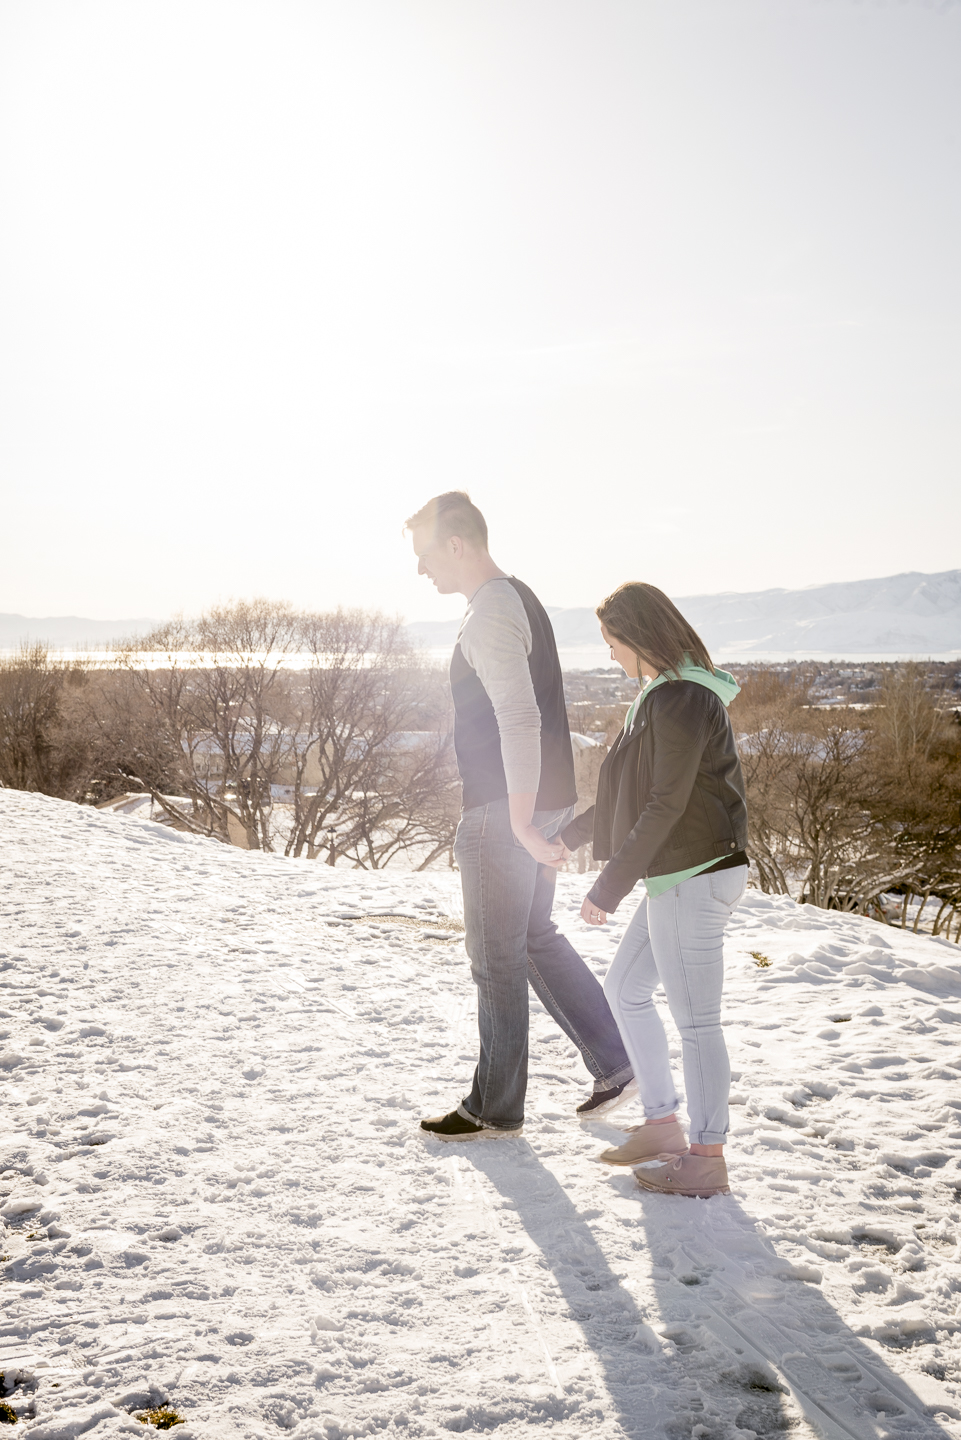 savage_couple_portrait_snow_pine_utah_Christin-13.jpg